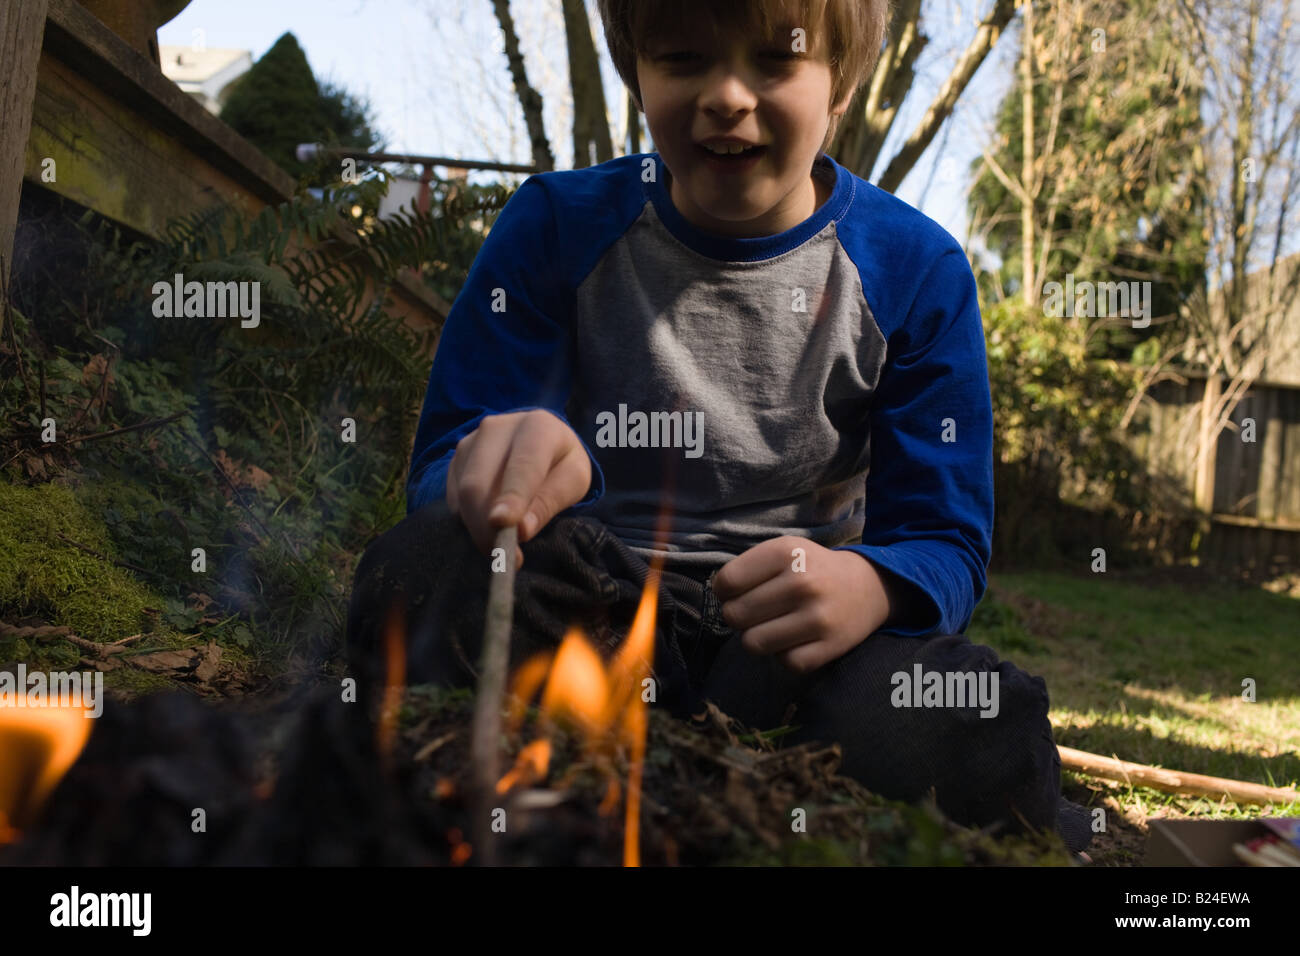 Boy playing with fire - Stock Image